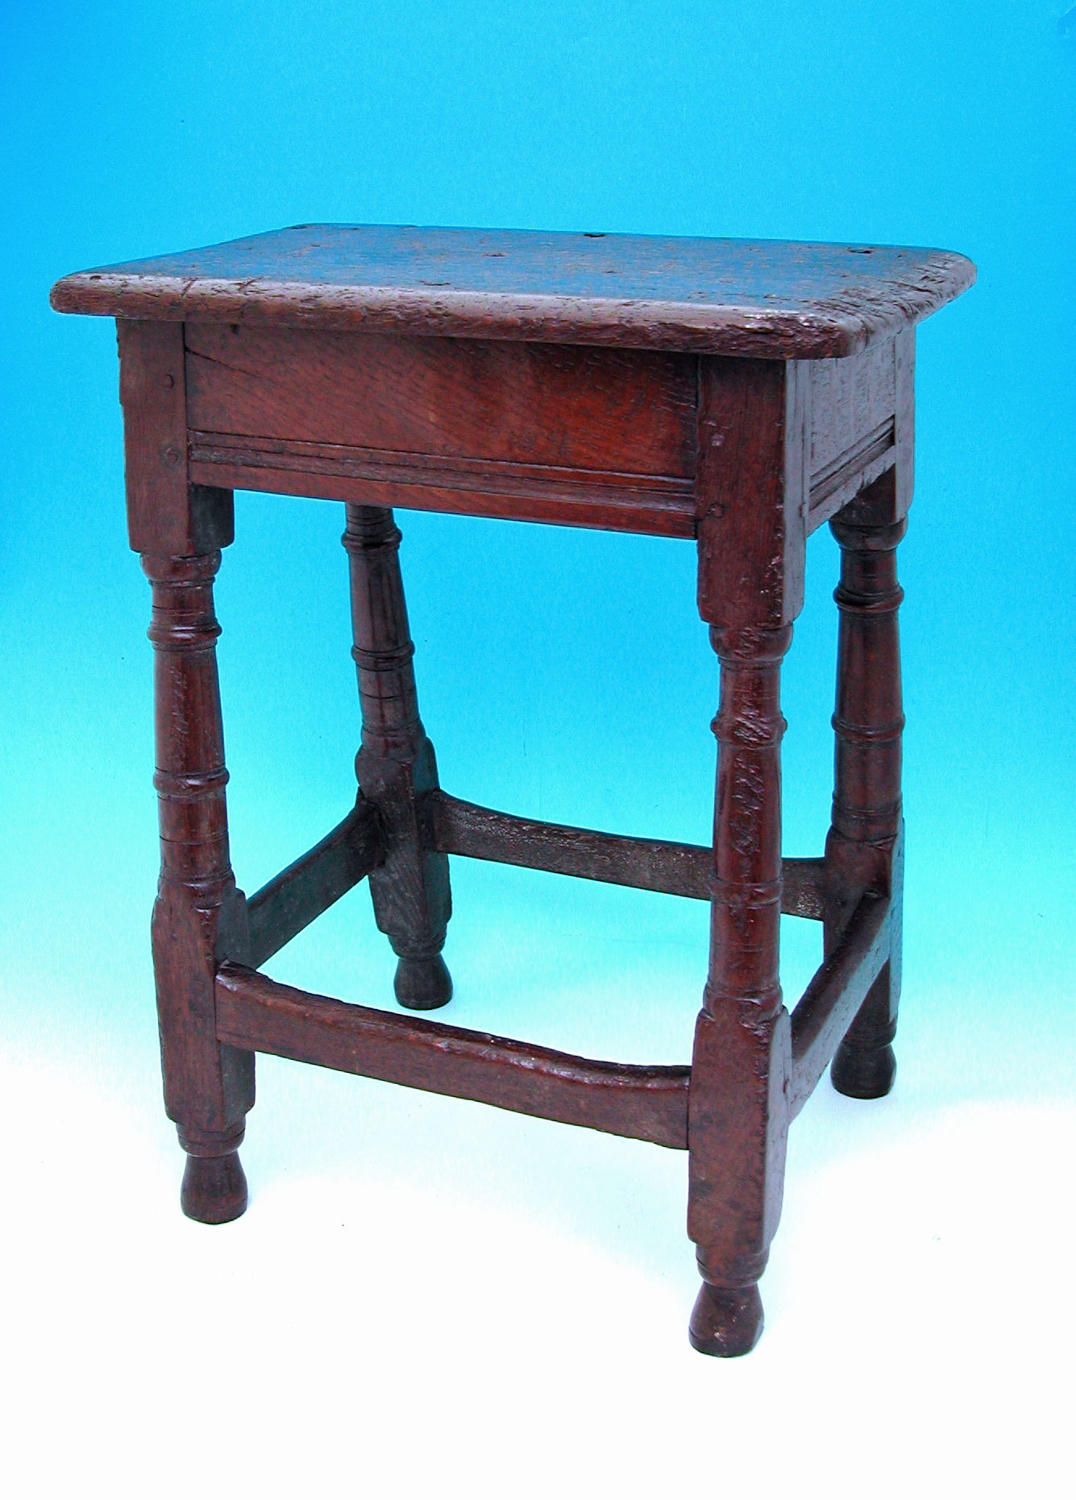 Early English Furniture 17thc Oak Joyned Stool. C1620-40.